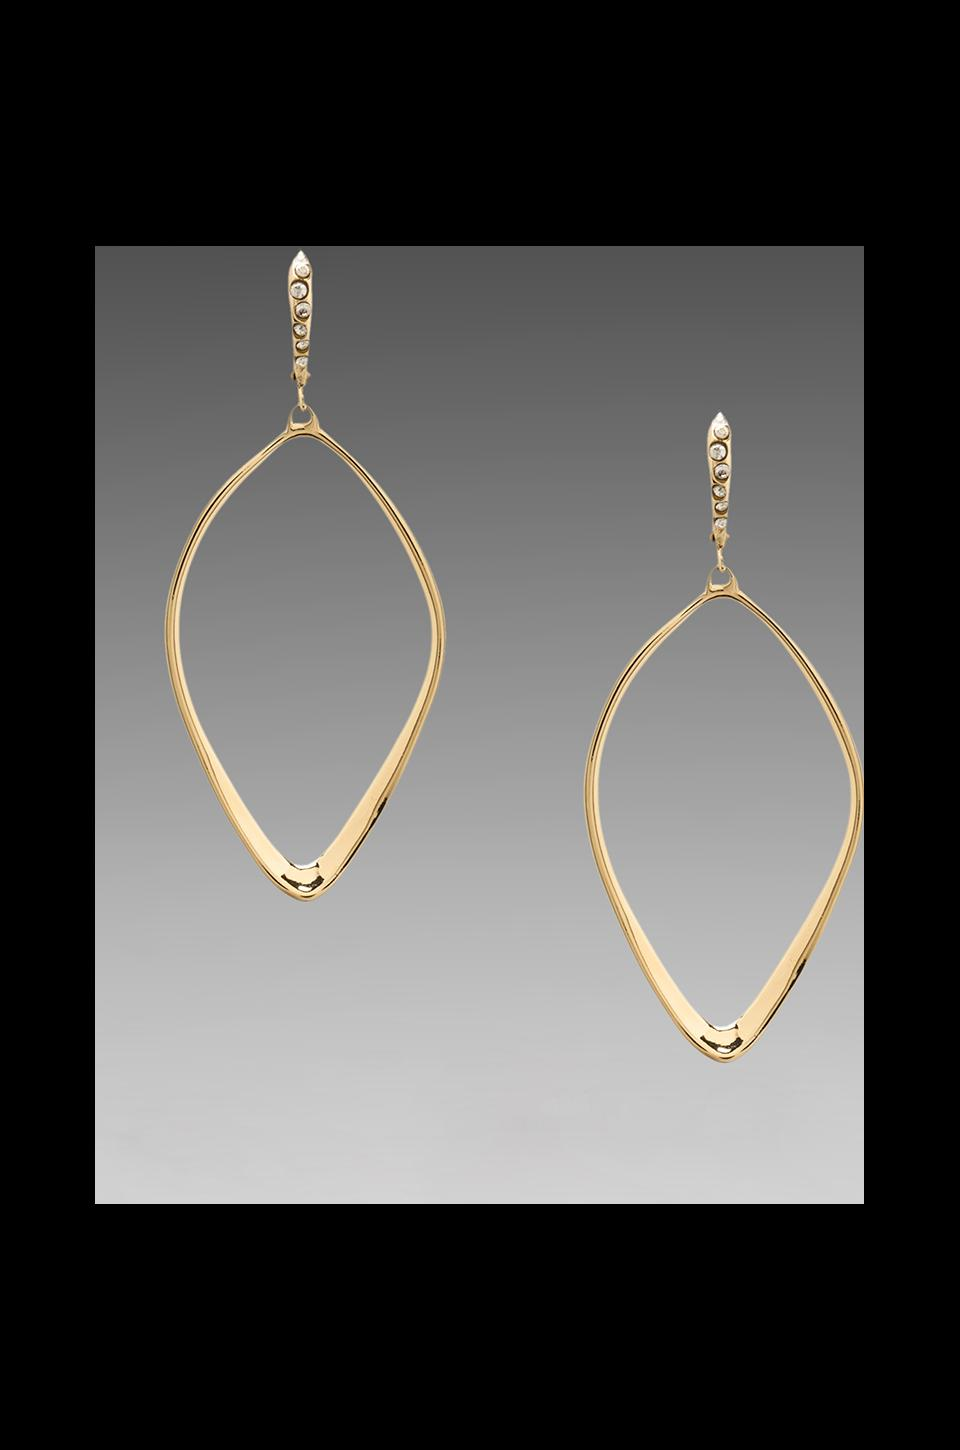 Alexis Bittar Sculpted Aura Tear Earring in Gold